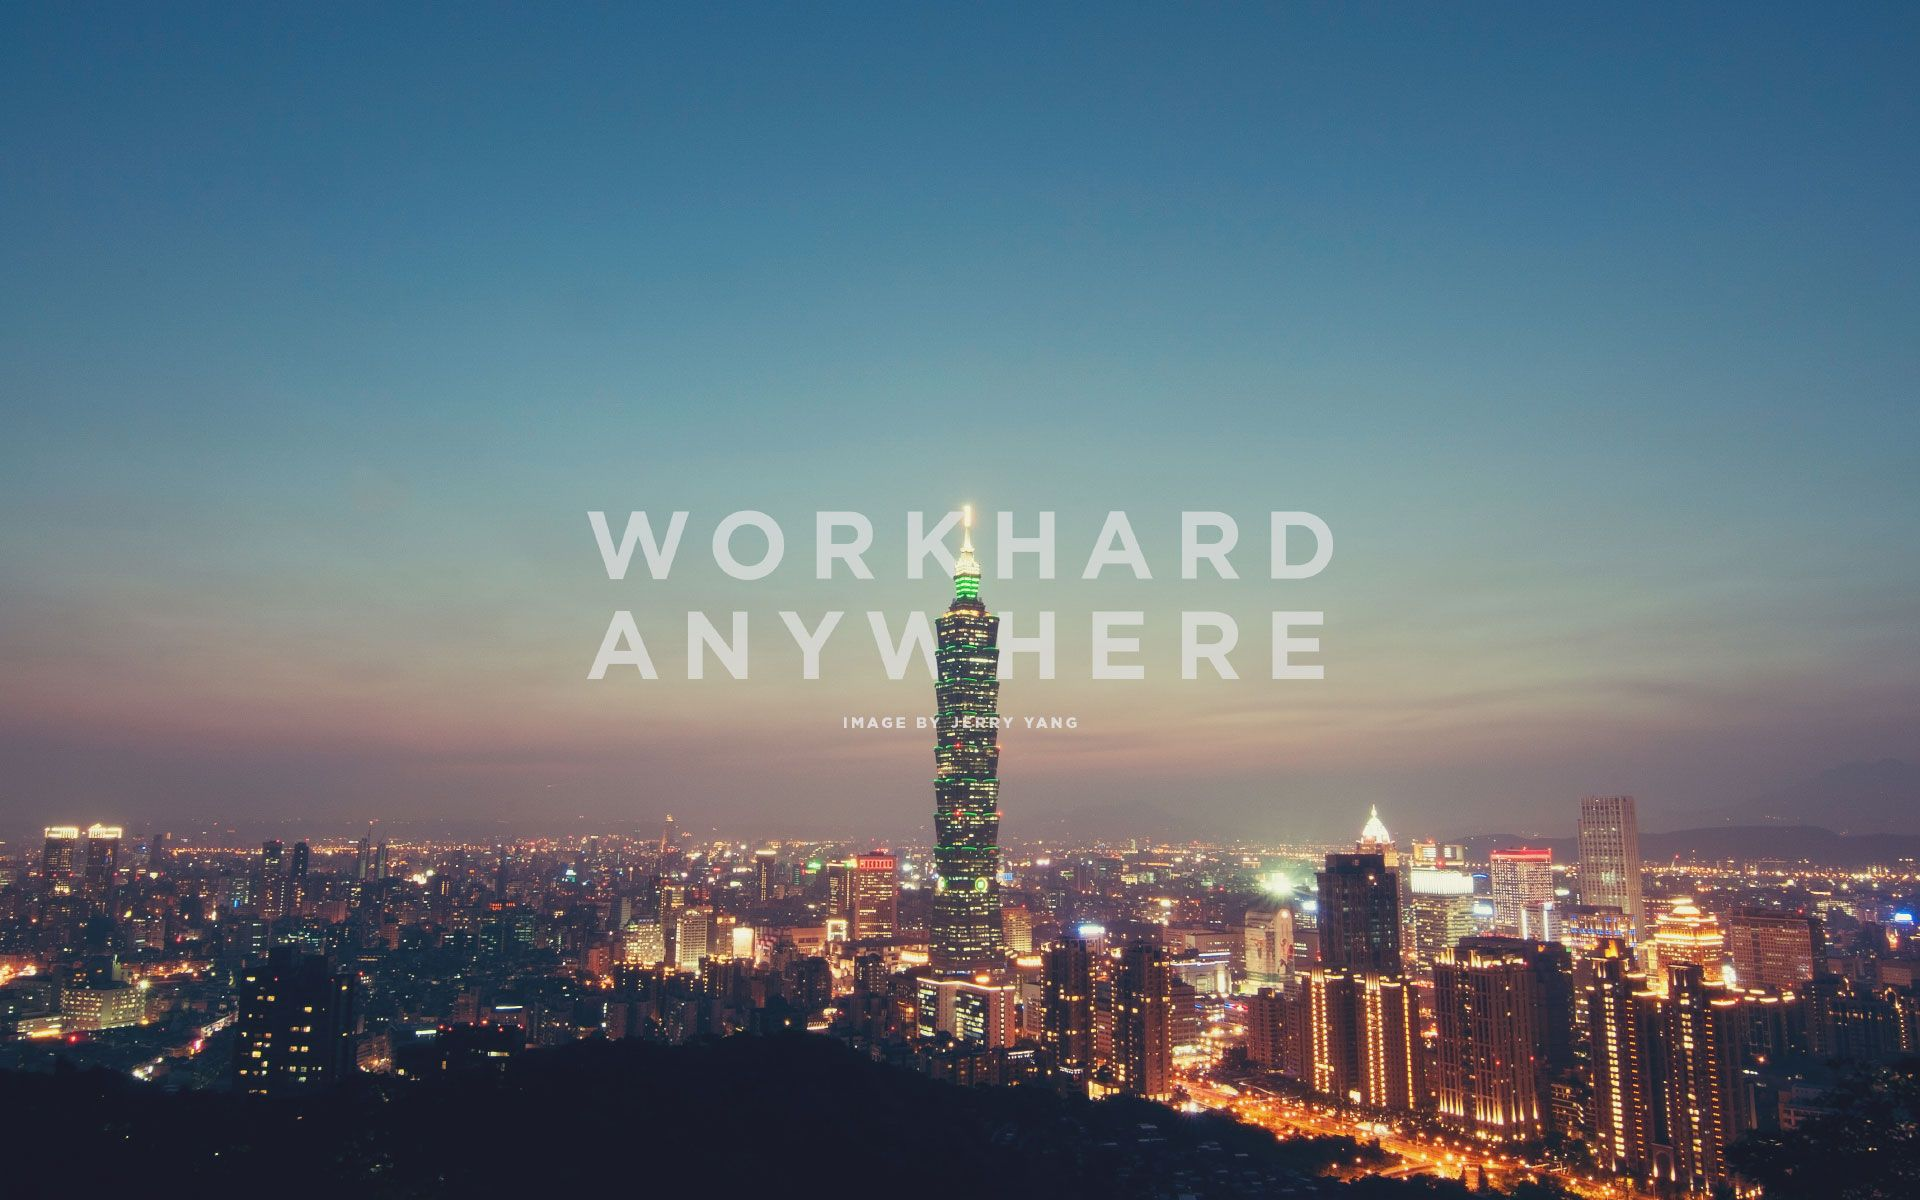 Taipei 101 Wallpapers Work Hard Any Where Laptop Wallpaper